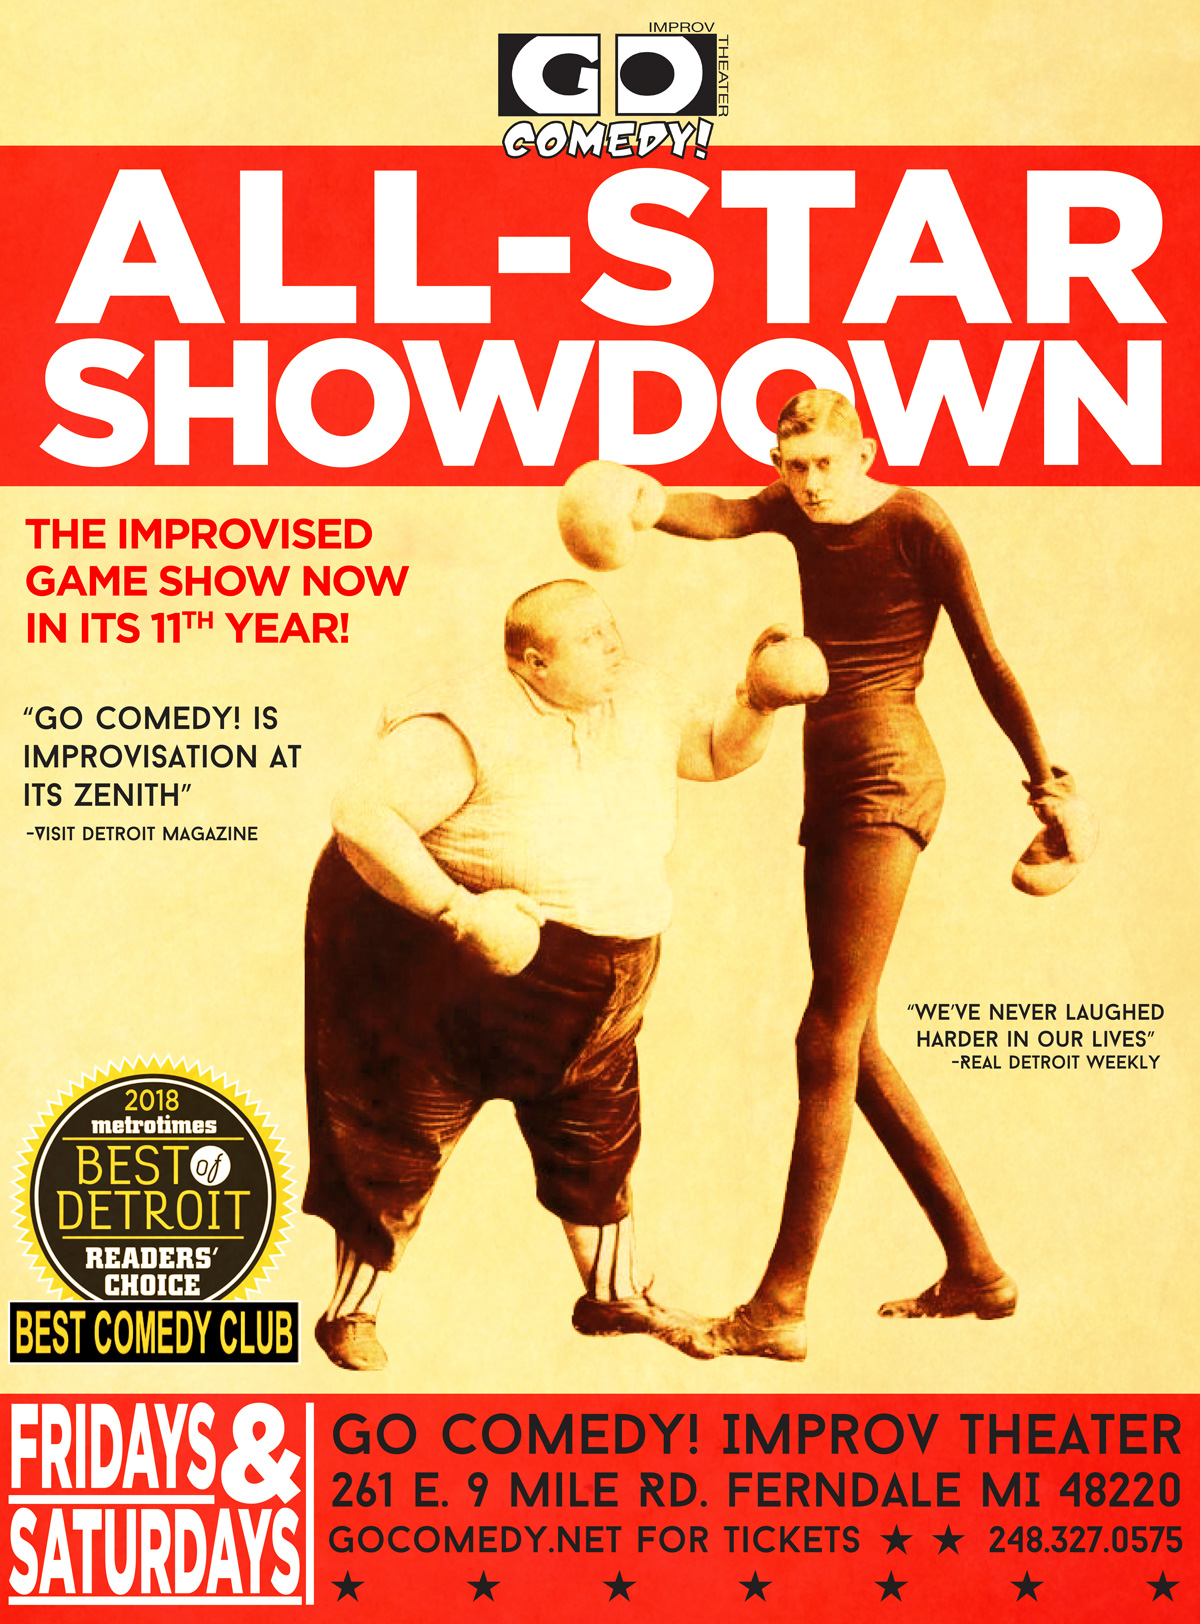 Allstar-Showdown-2019-web.jpg